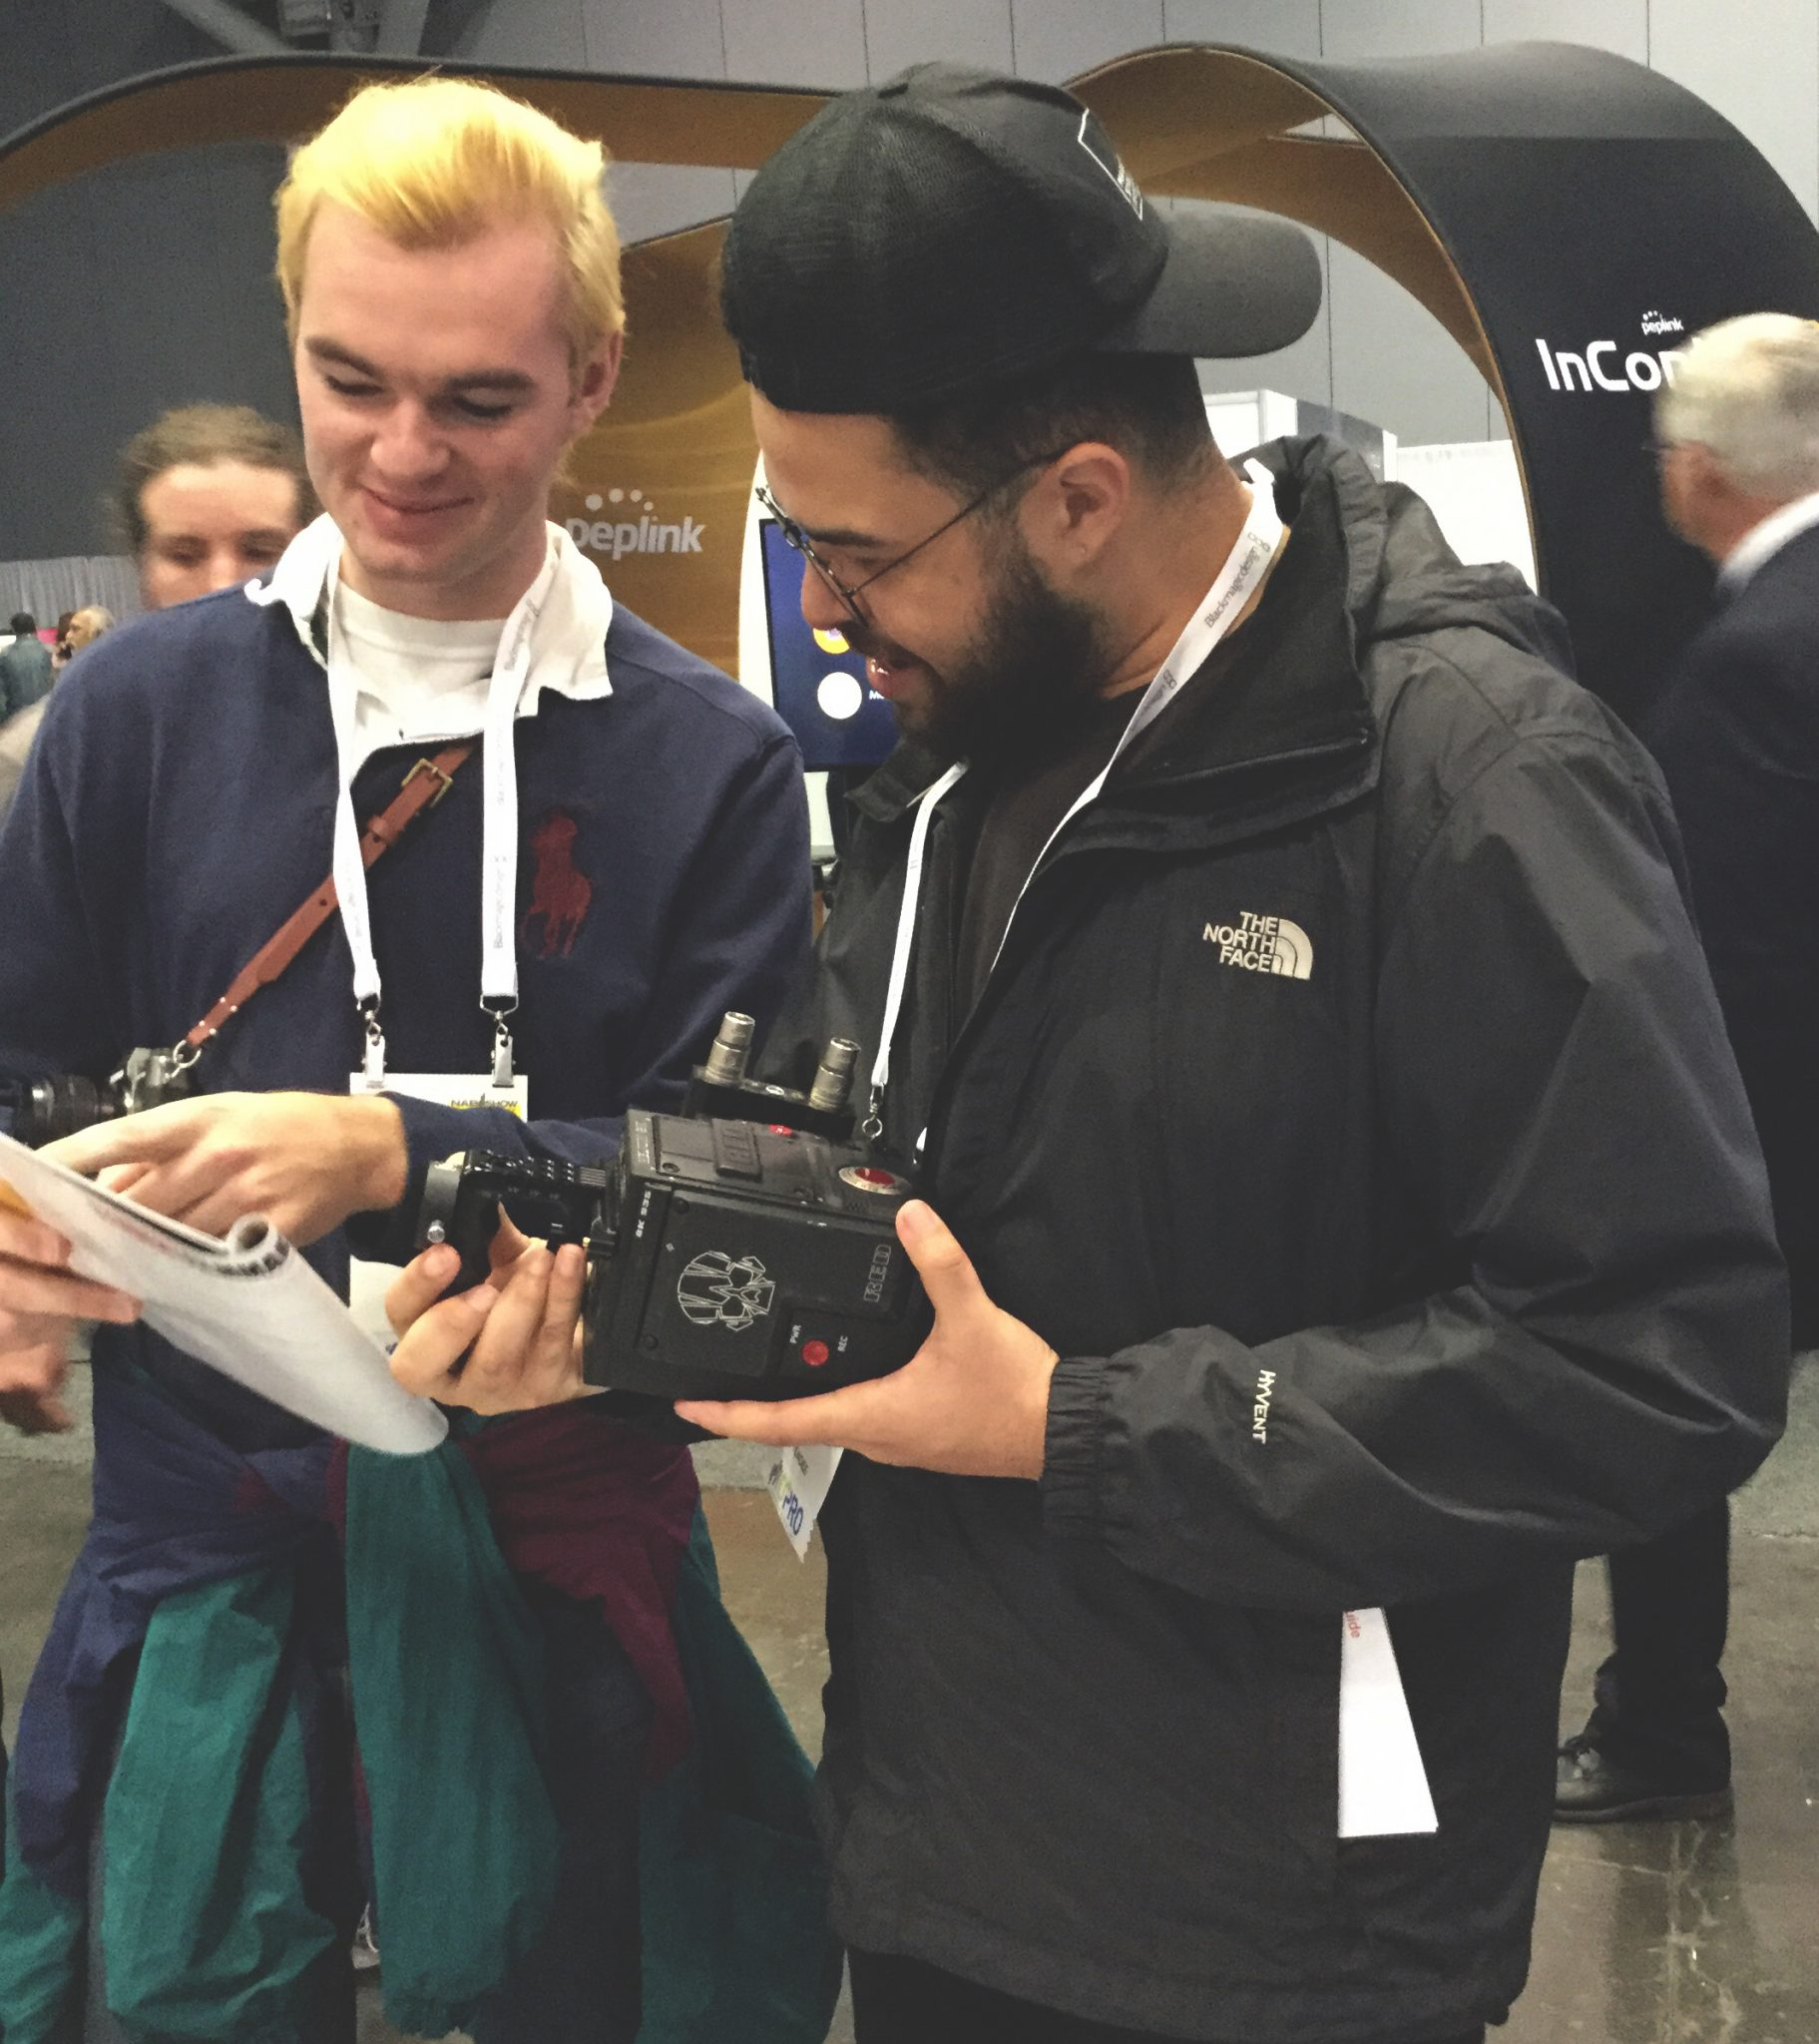 NAB Show New York - Filmmakers, Content Creators, and Broadcasters check out the Beachtek DXA-RED at the StudentFilmmakers Magazine Booth N1058